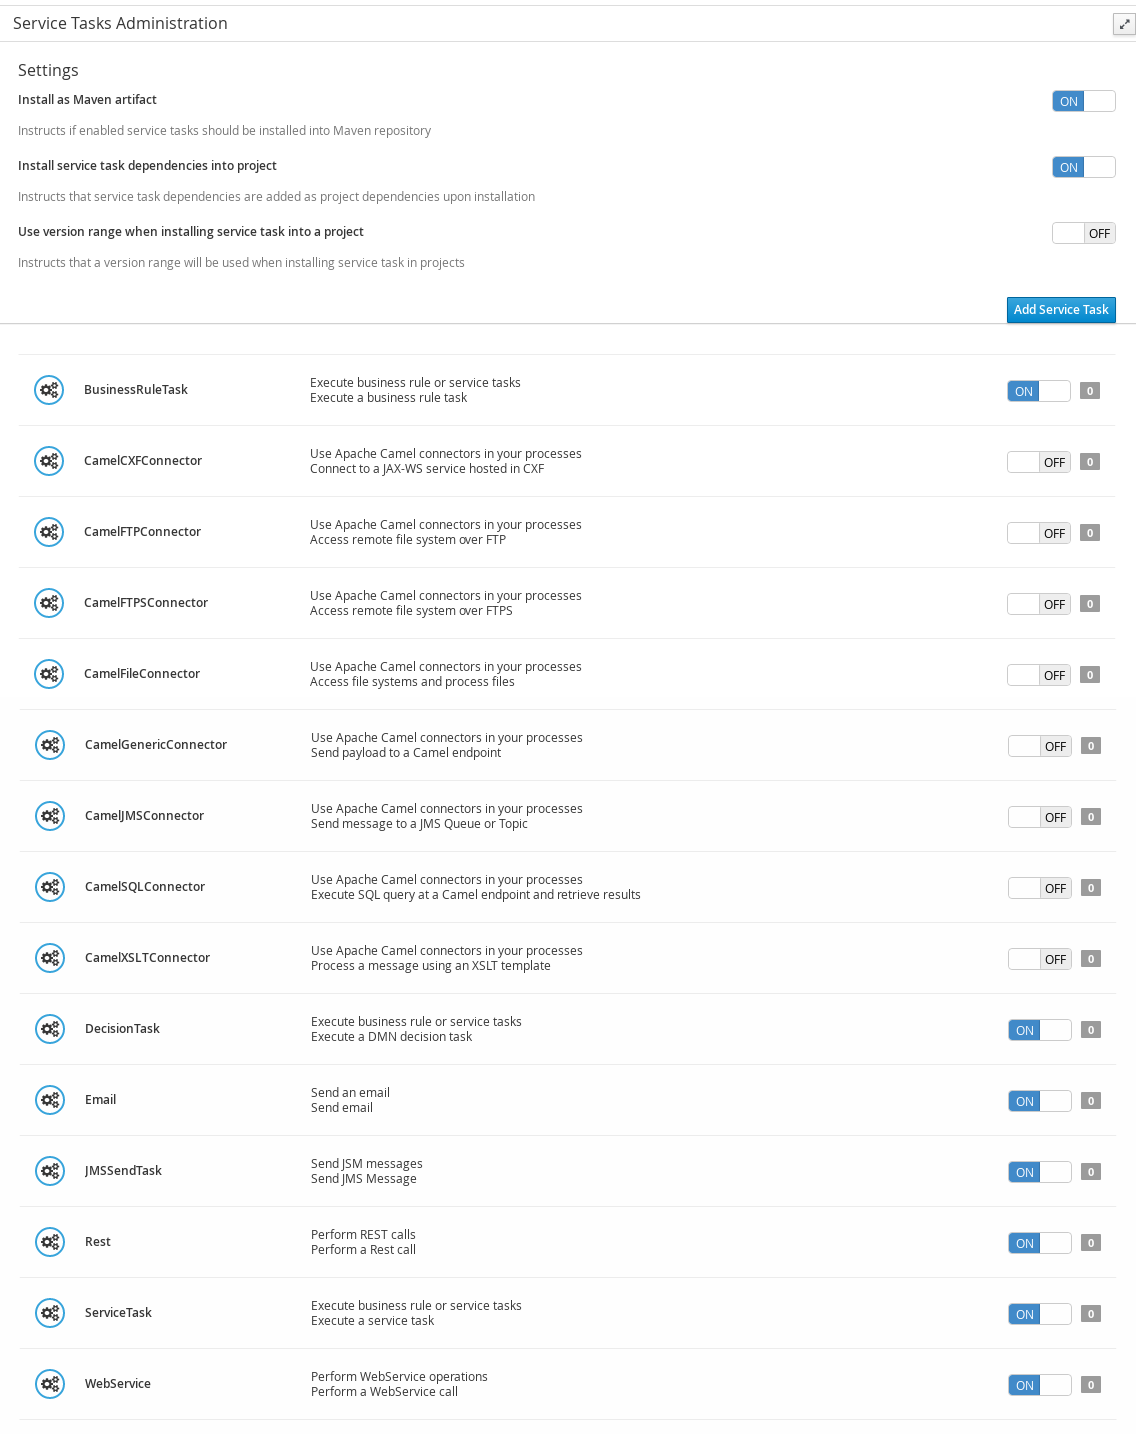 Service Tasks Administration page